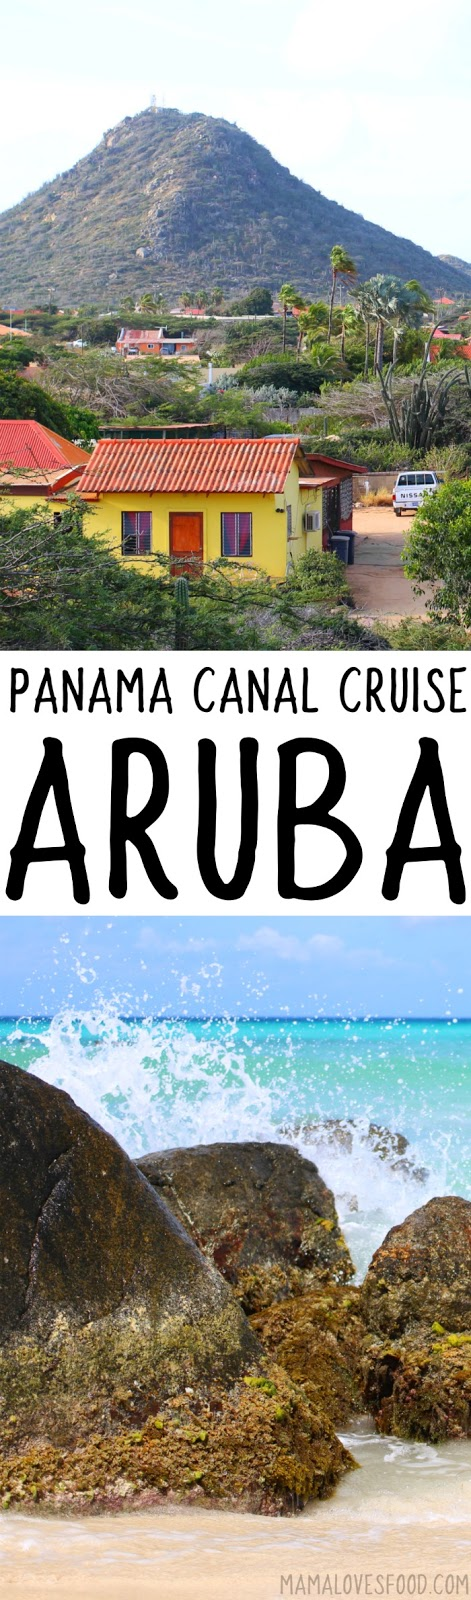 why you should plan a cruise to the Caribbean